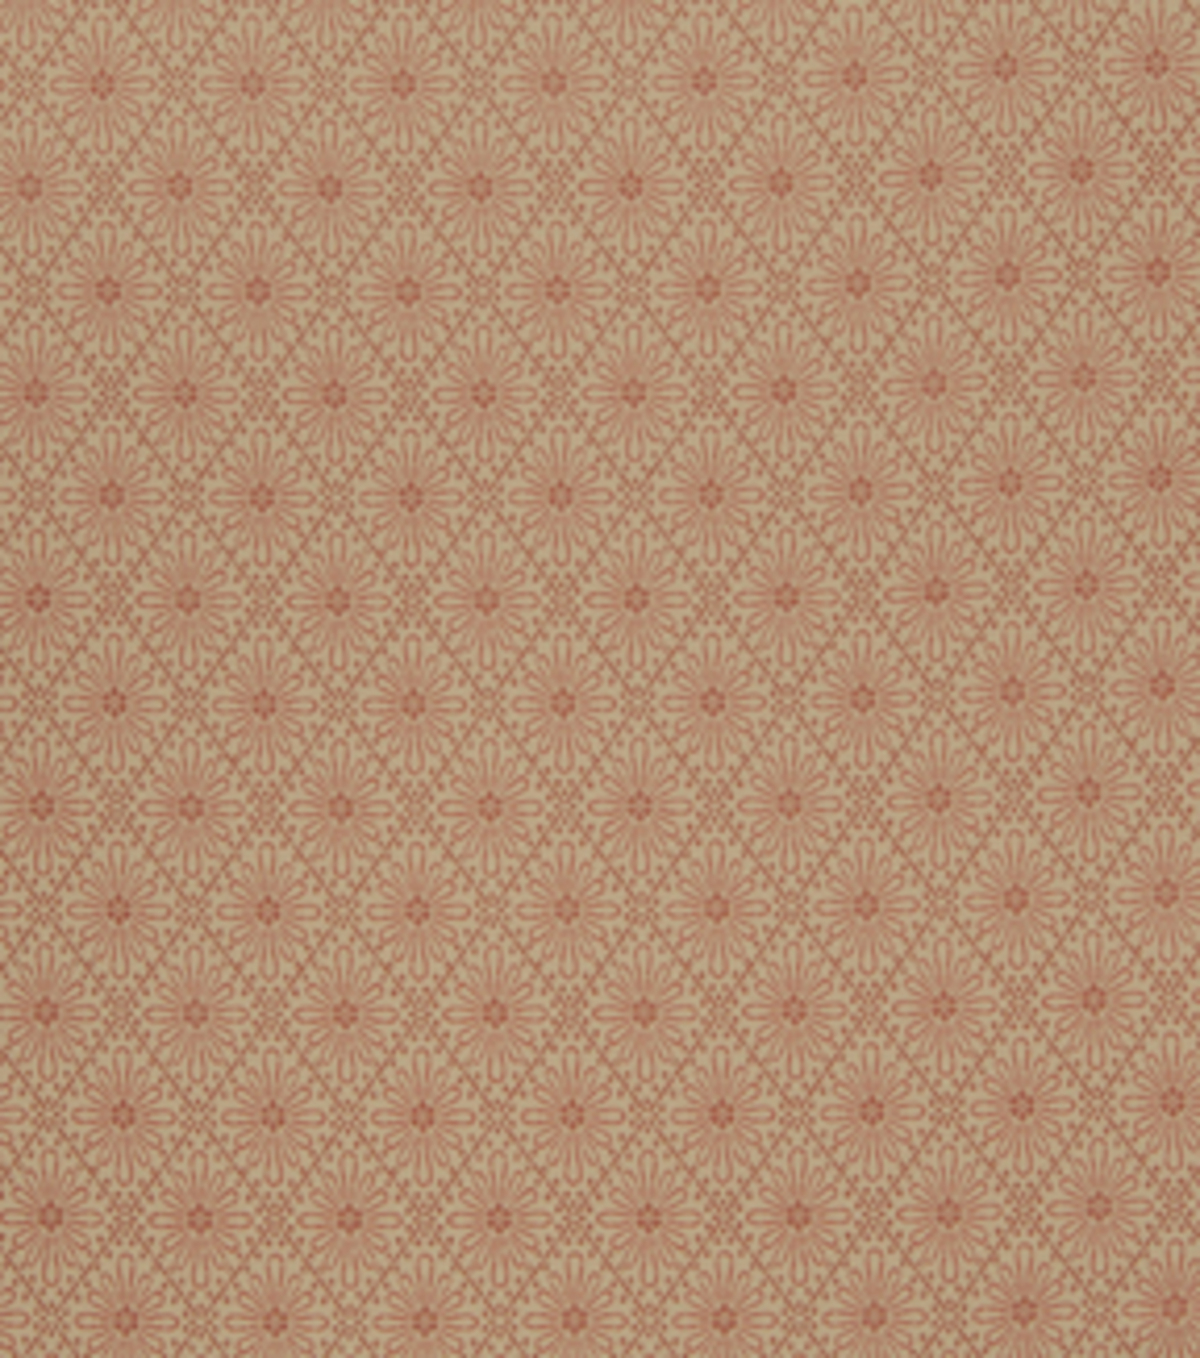 Home Decor 8\u0022x8\u0022 Fabric Swatch-French General  Decade Rouge